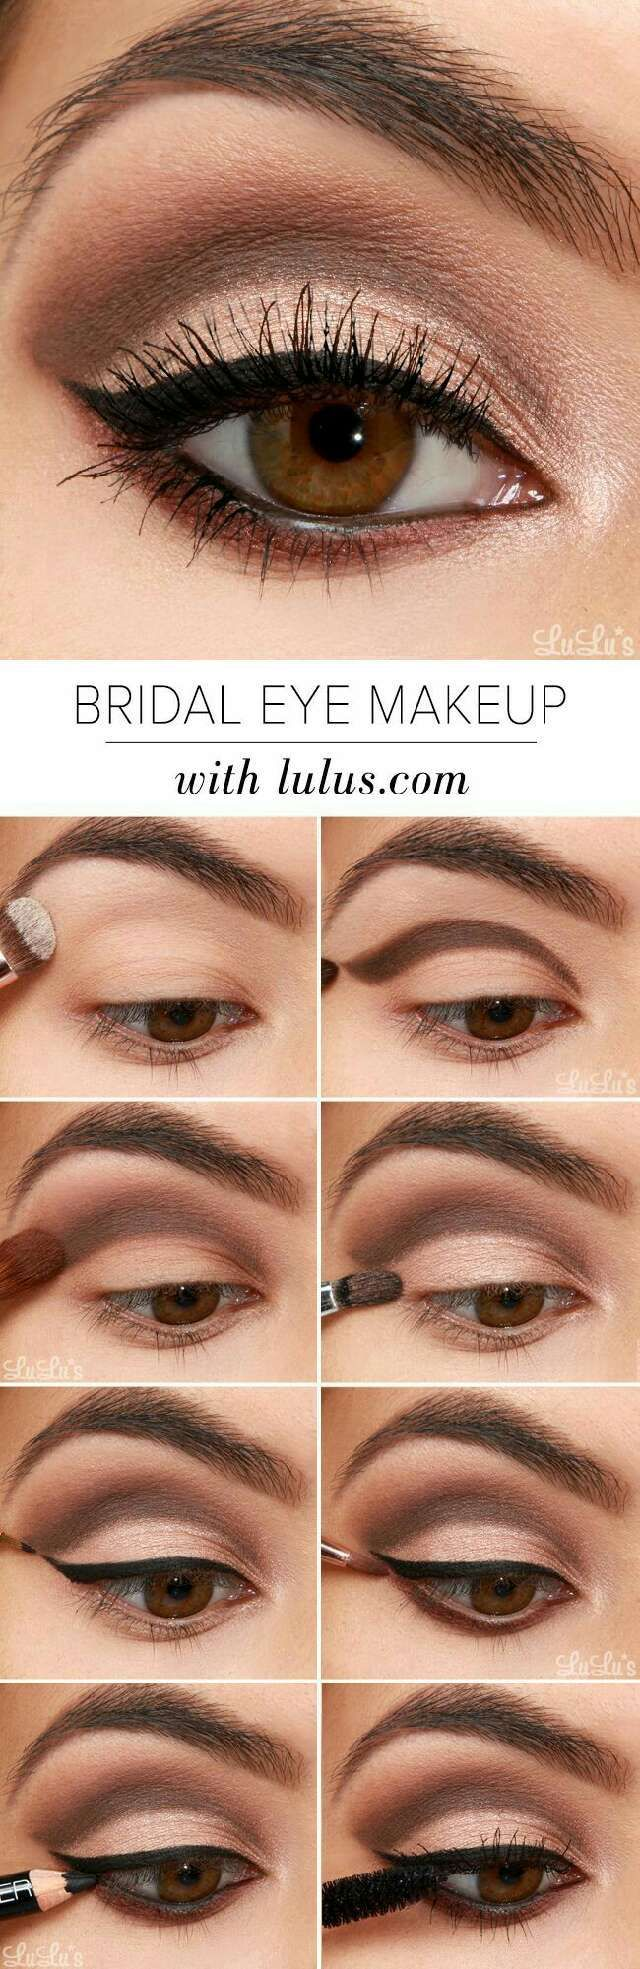 How-to Eye Makeup For Brown Eyes Trusper. Beauty, Hair and Makeup - Tips, Tricks, Hacks, Ideas, Tutorials and more.